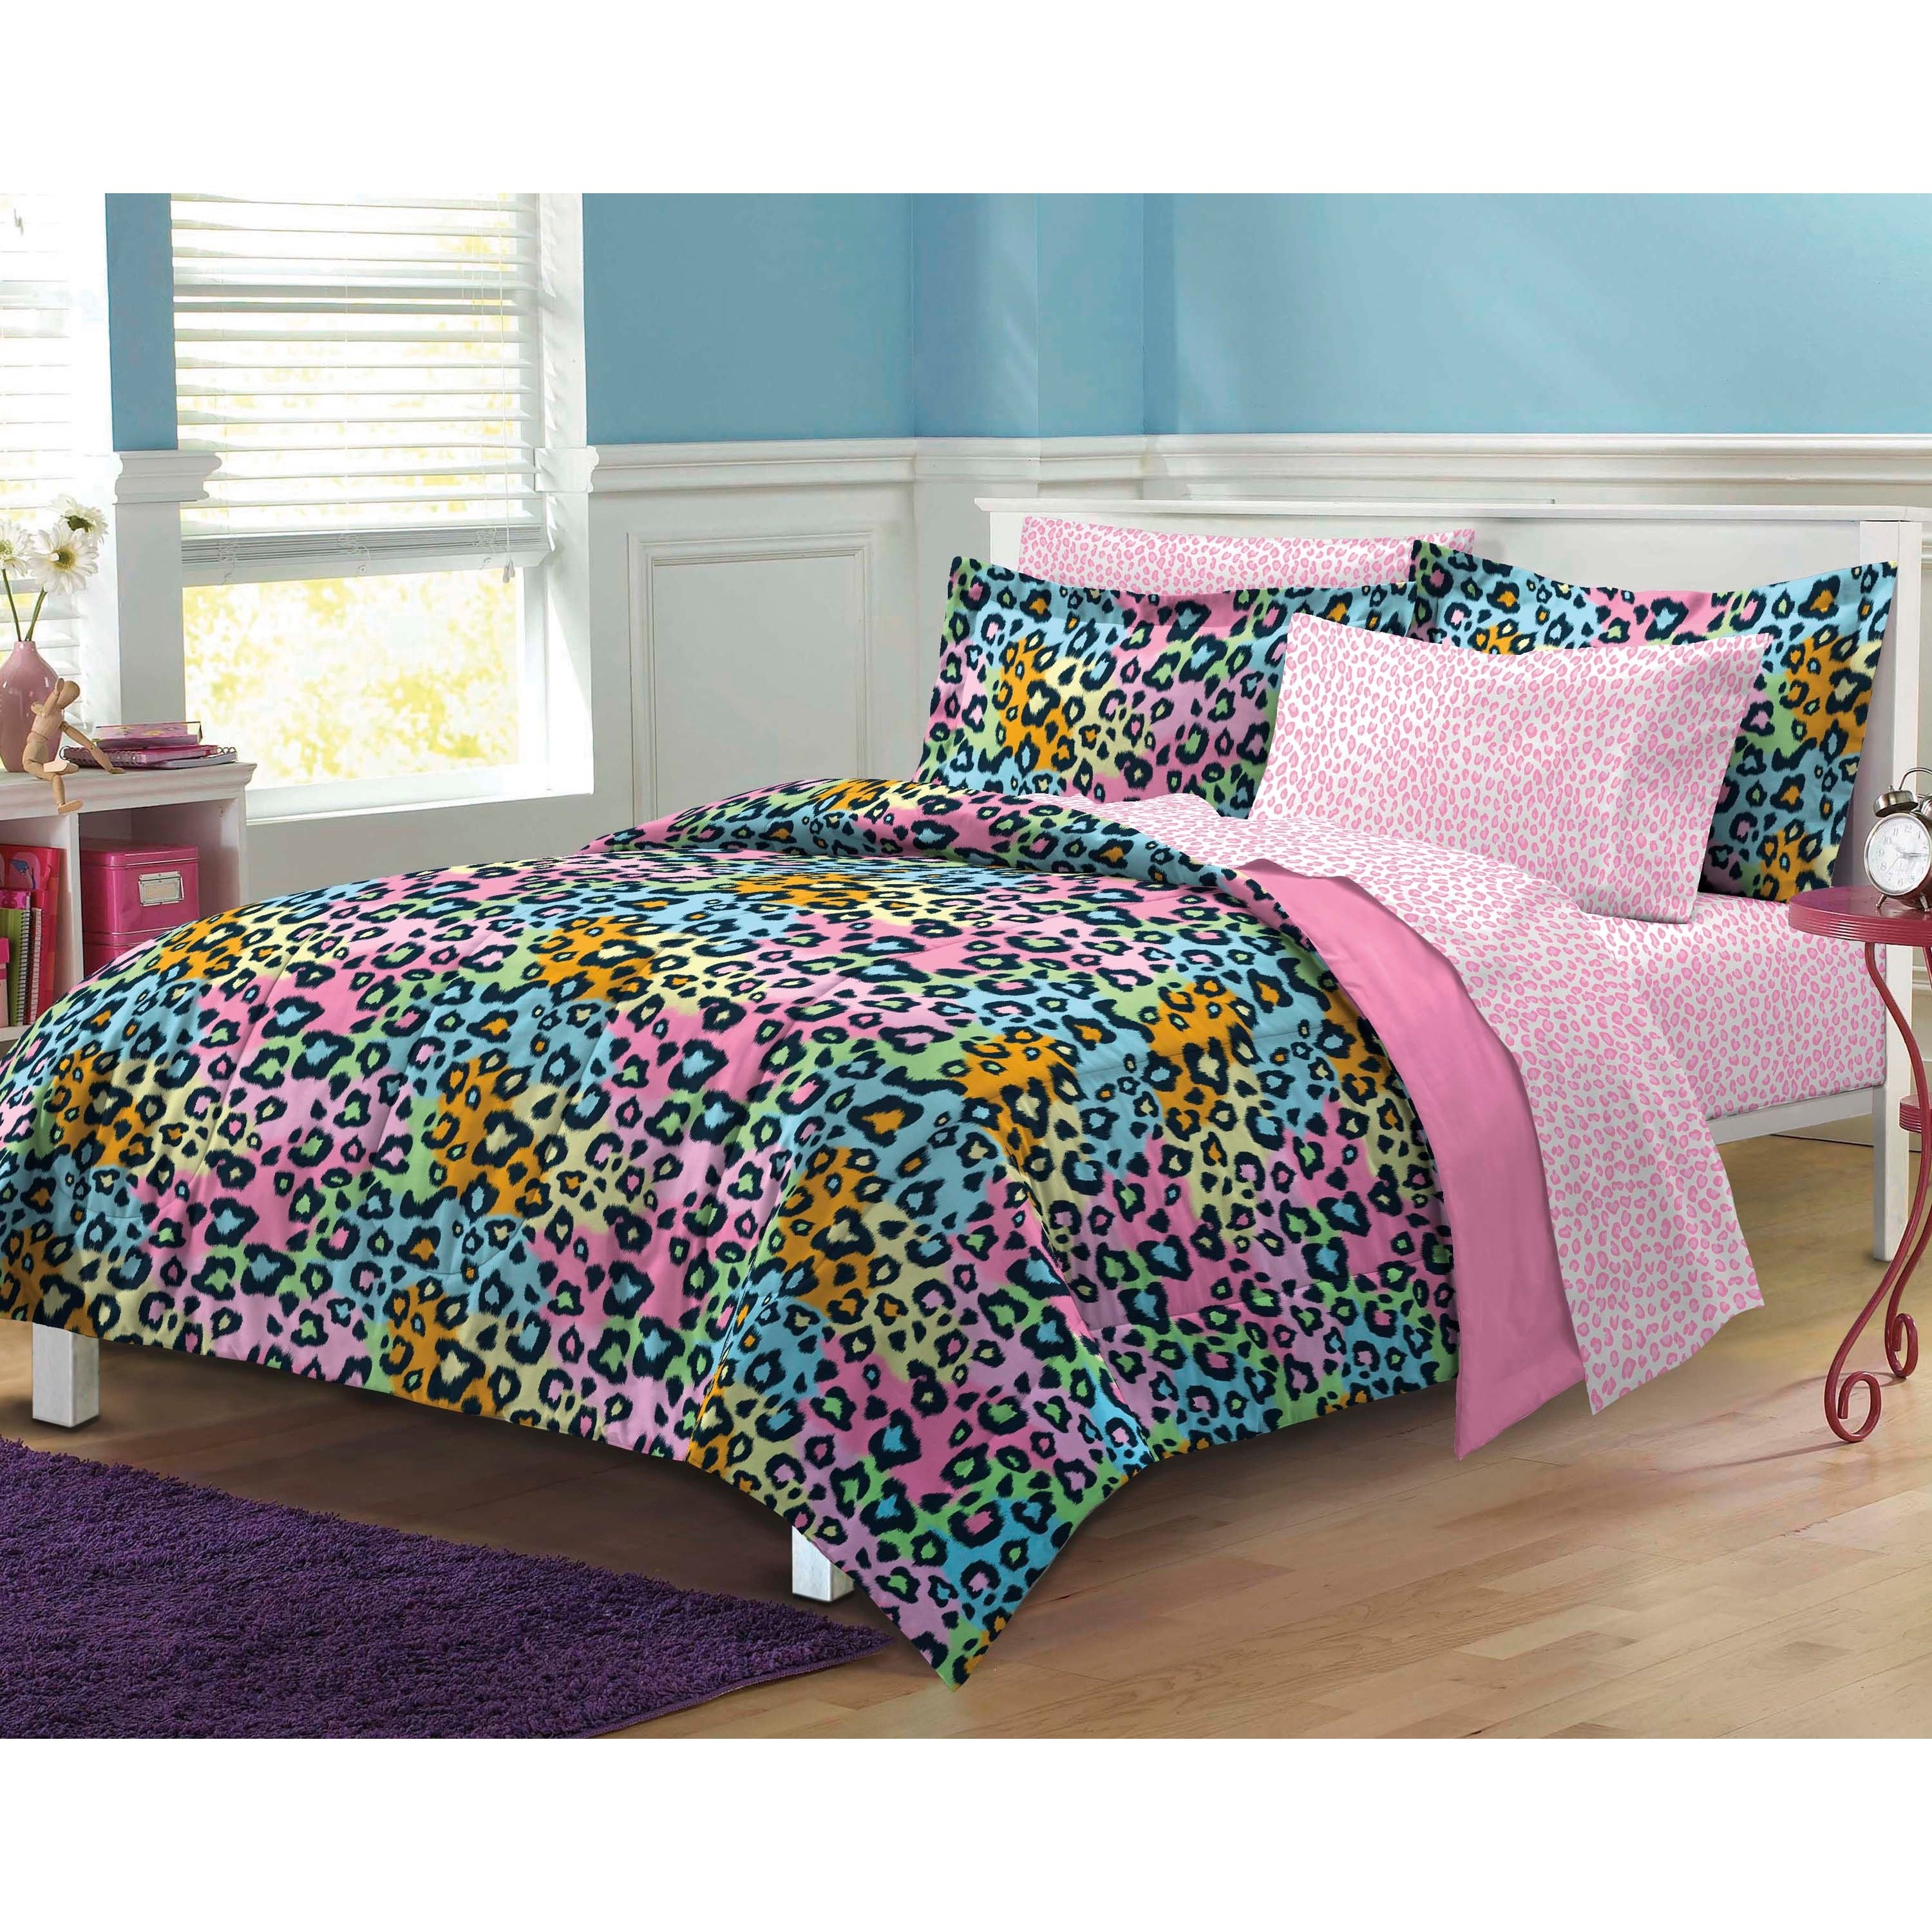 Multicolor Leopard 7-piece Bed in a Bag with Sheets Set (...